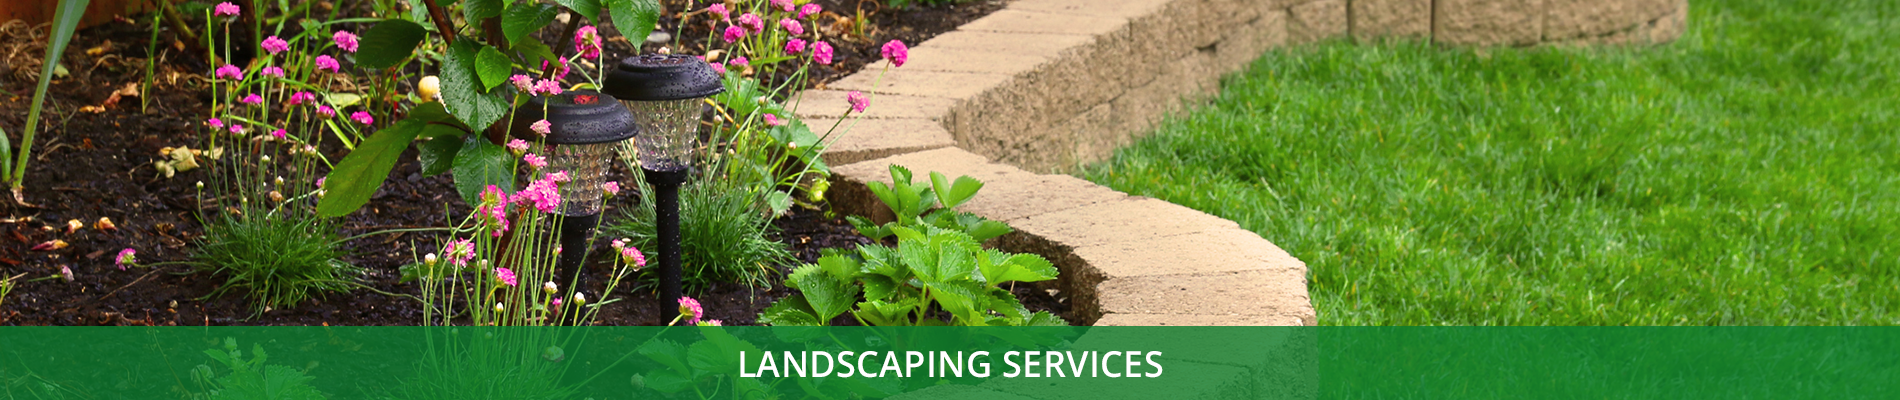 Landscaping-Services-Banner1.2.png